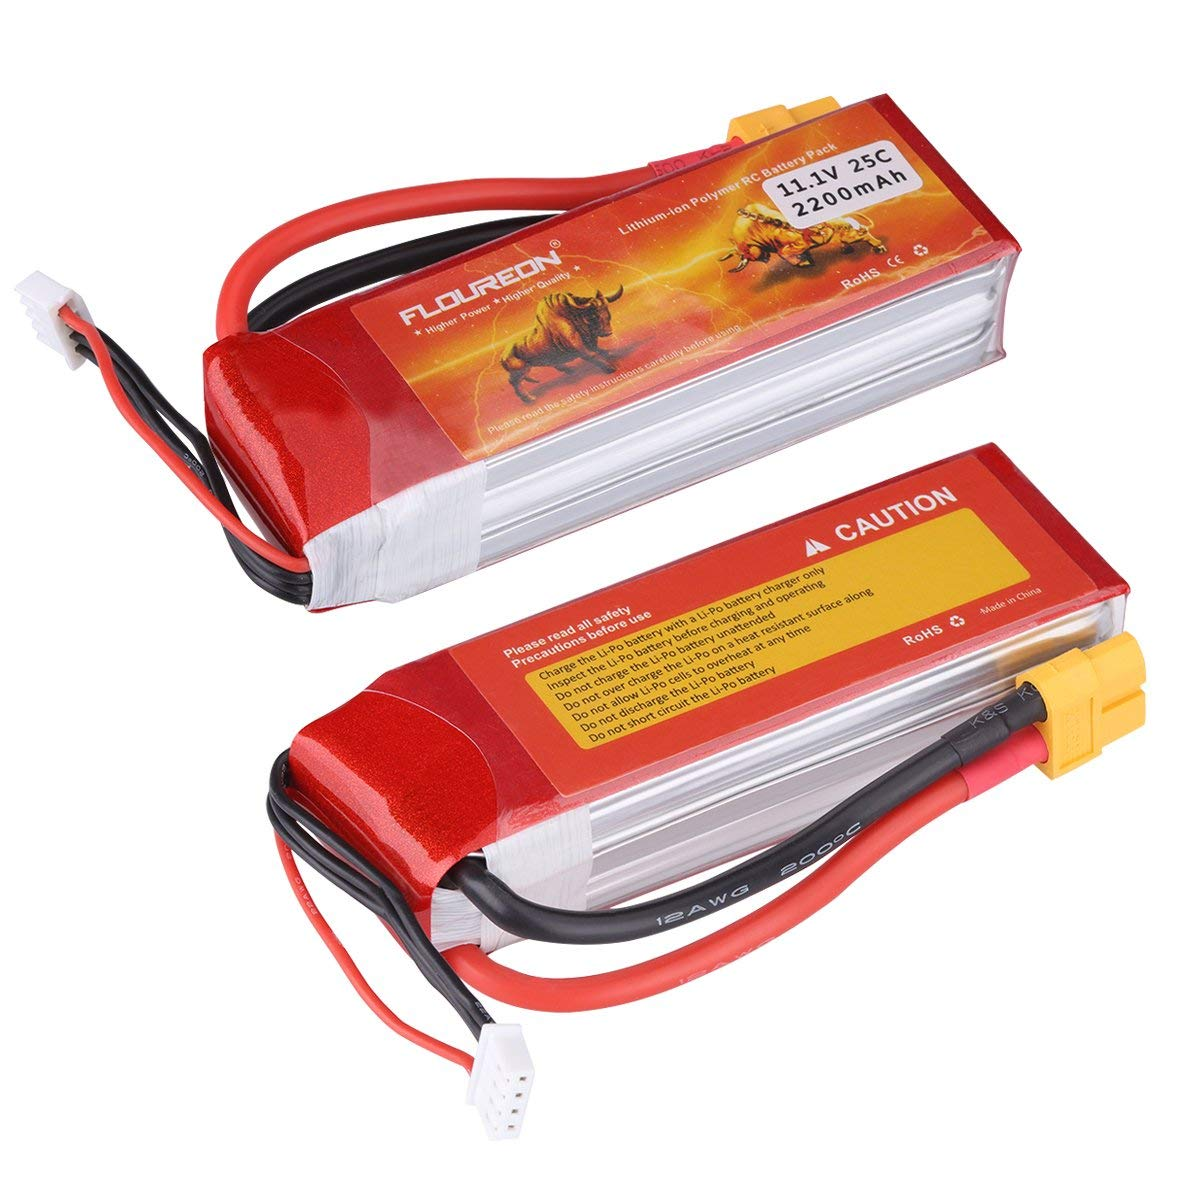 Floureon 3S Lipo Battery 25C 11.1V 2200mAh Li-Polymer Lipo RC Battery Pack with XT60 Plug Connector for RC Airplane RC Helicopter RC Car RC Truck RC Boat Quadcopter by floureon